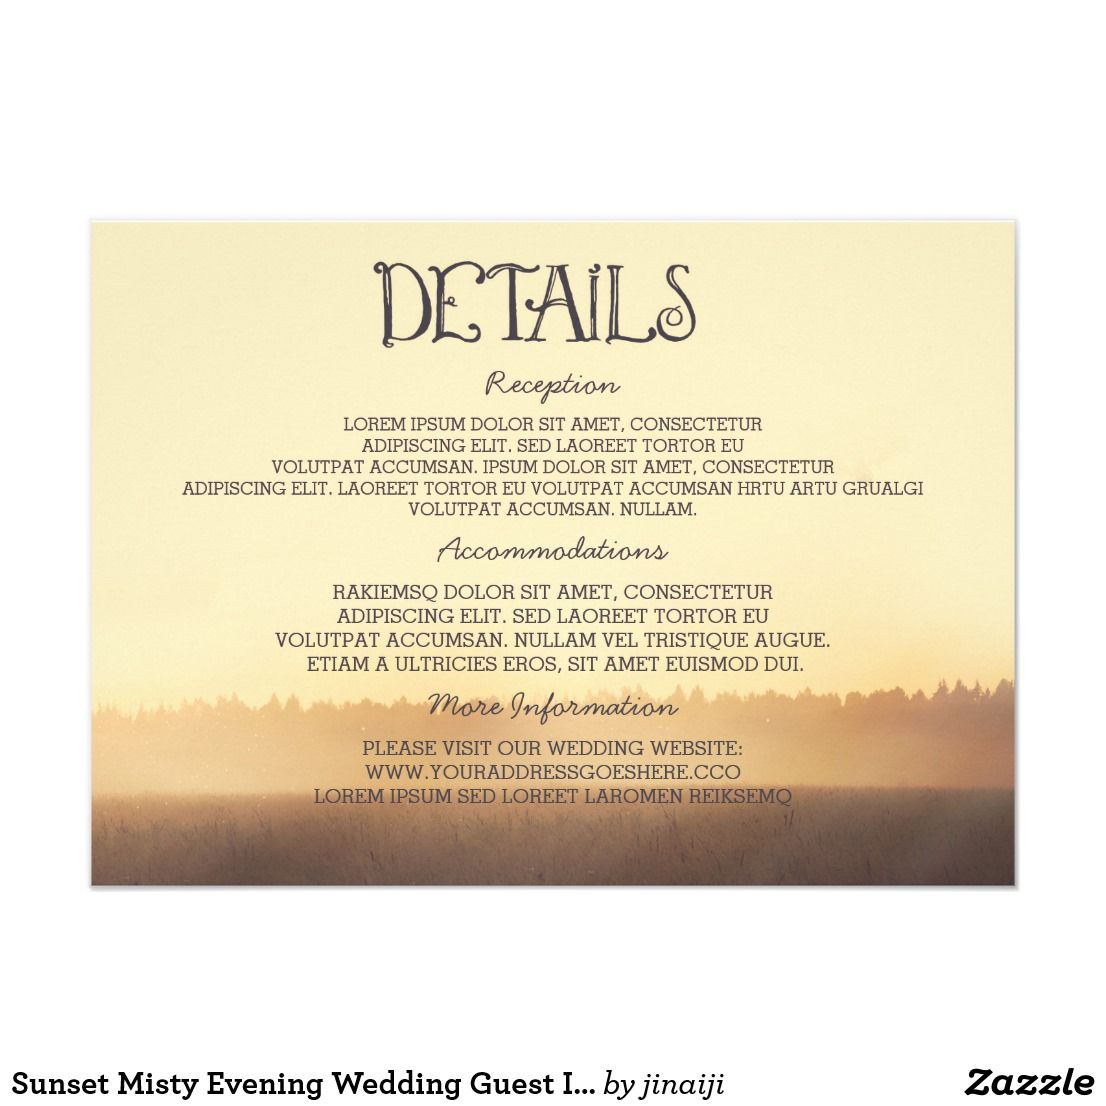 Sunset Misty Evening Wedding Guest Information Card | Sunset ...